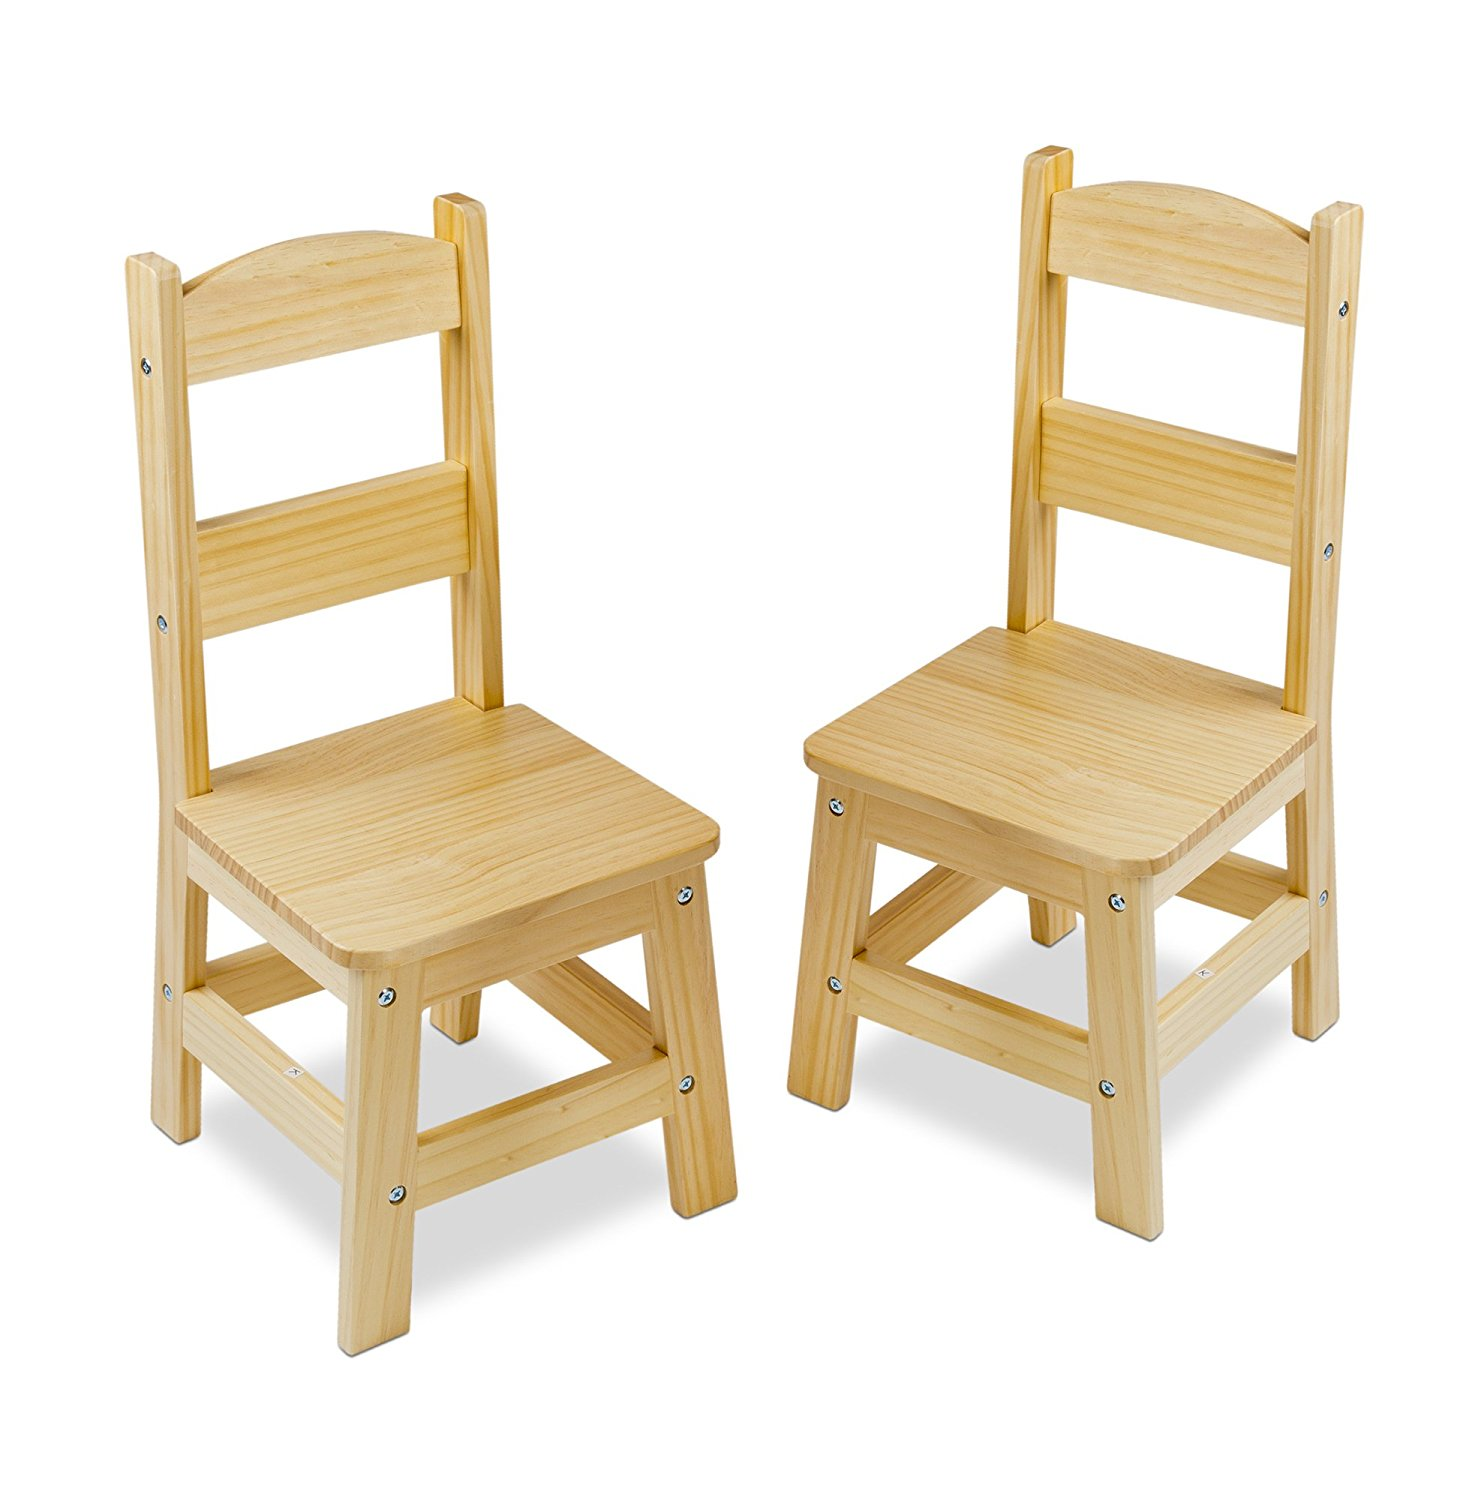 Wooden Chairs Melissa And Doug Solid Wood Chairs Set Of 2 Light Finish